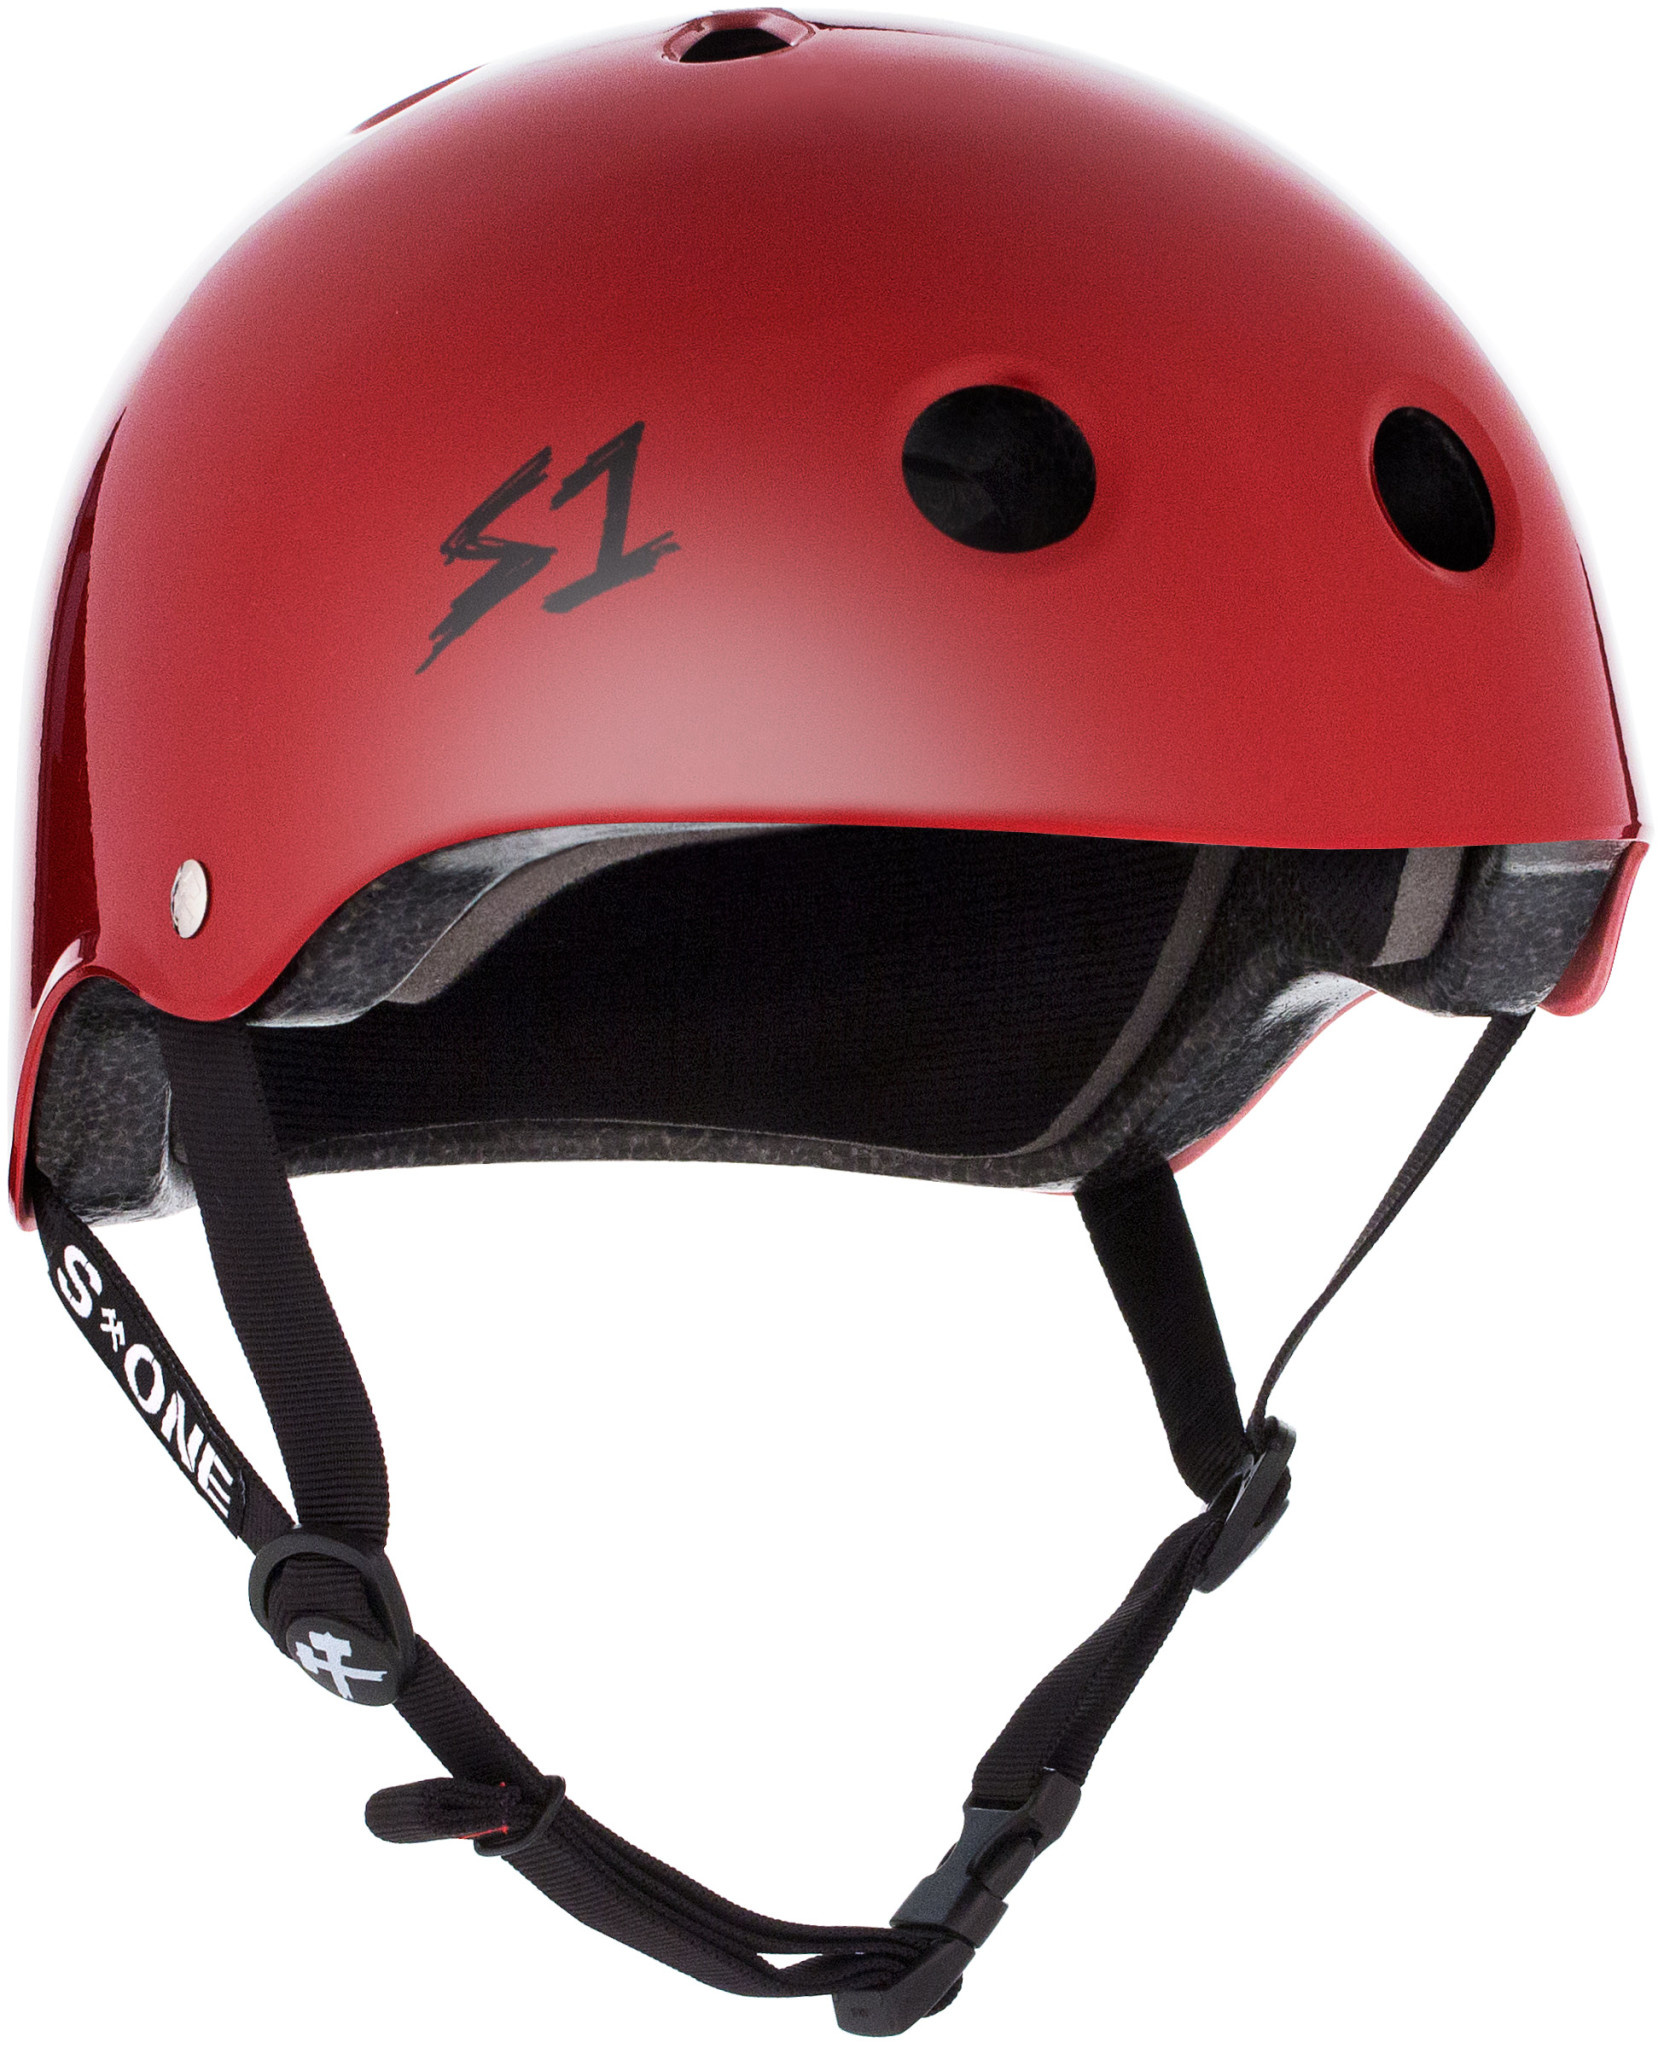 S-1 Lifer Helmet - Scarlet Red Gloss